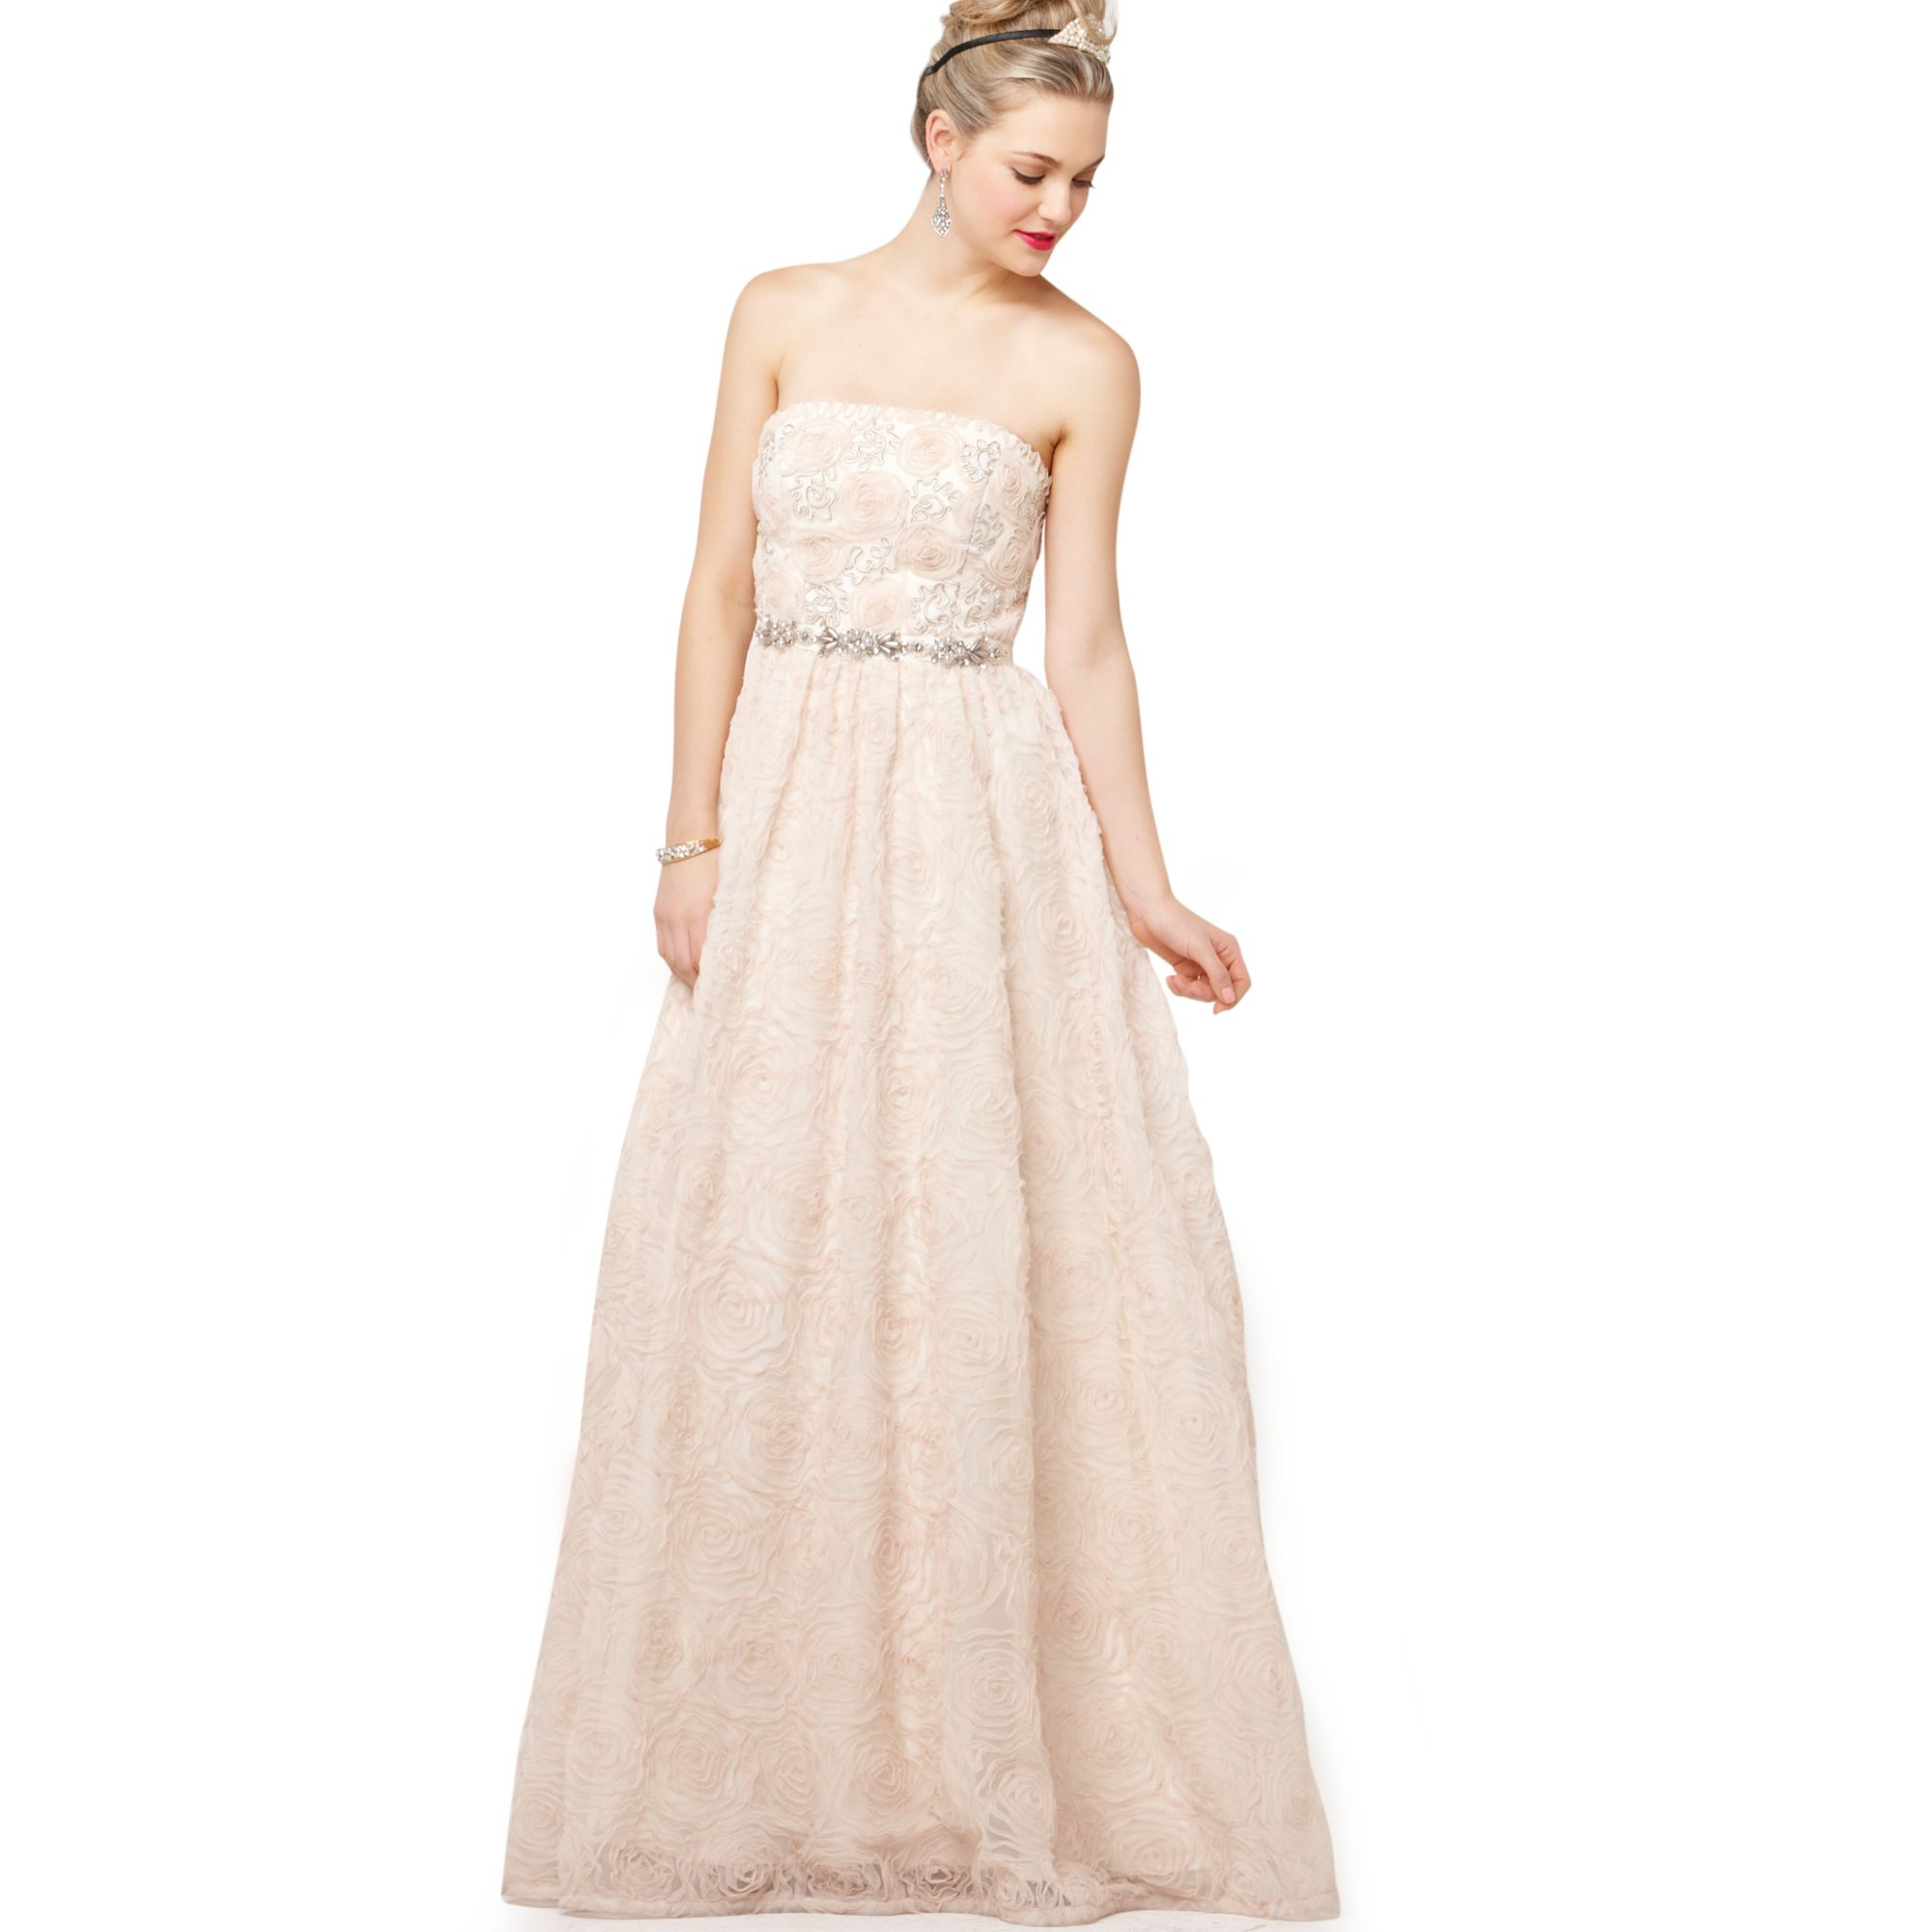 Lyst - Adrianna Papell Strapless Beaded Ball Gown in Brown